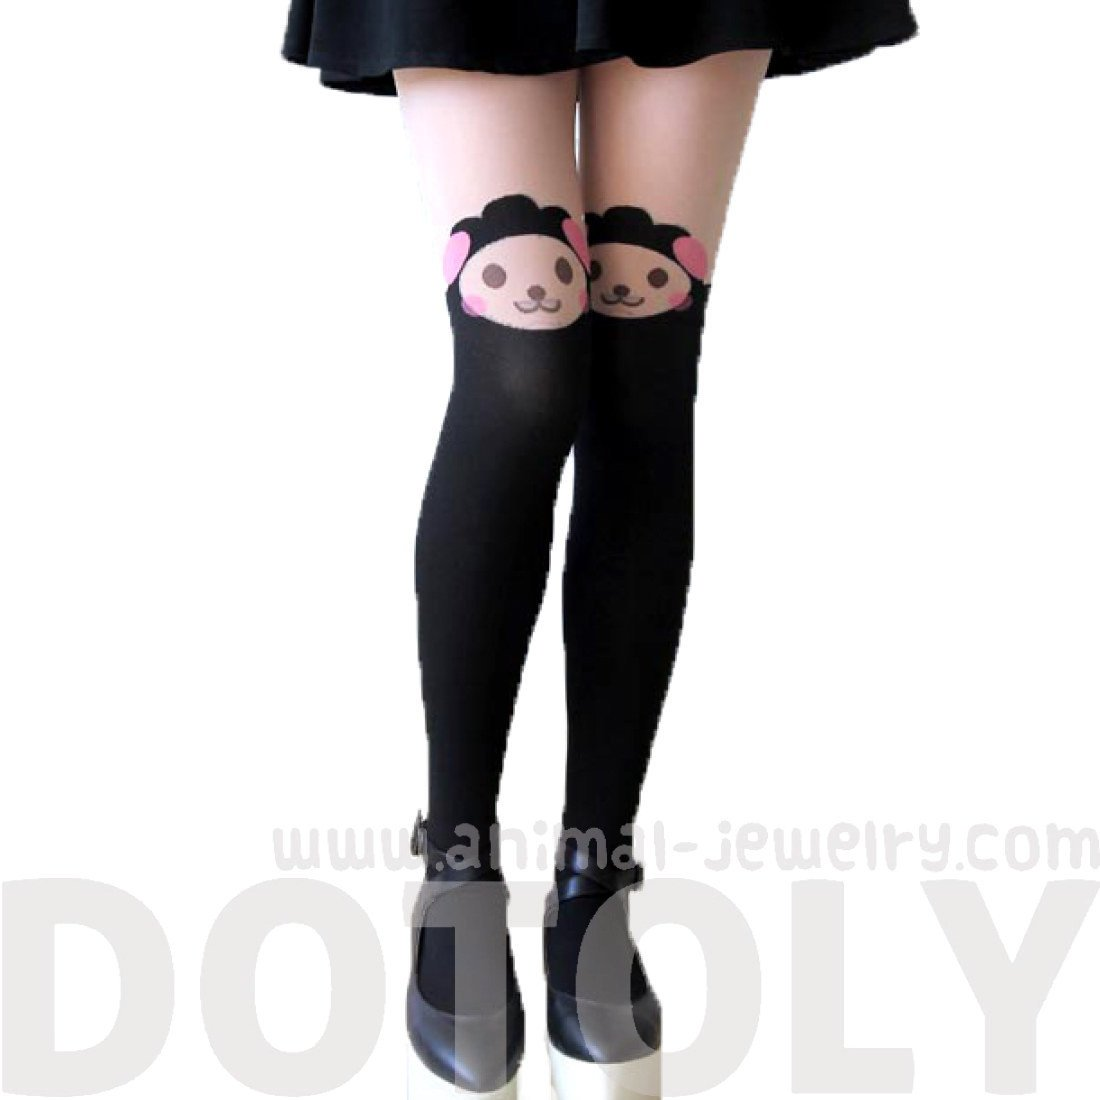 Adorable Sheep Alpaca Lamb Print Mock Thigh High Pantyhose Tights in Black